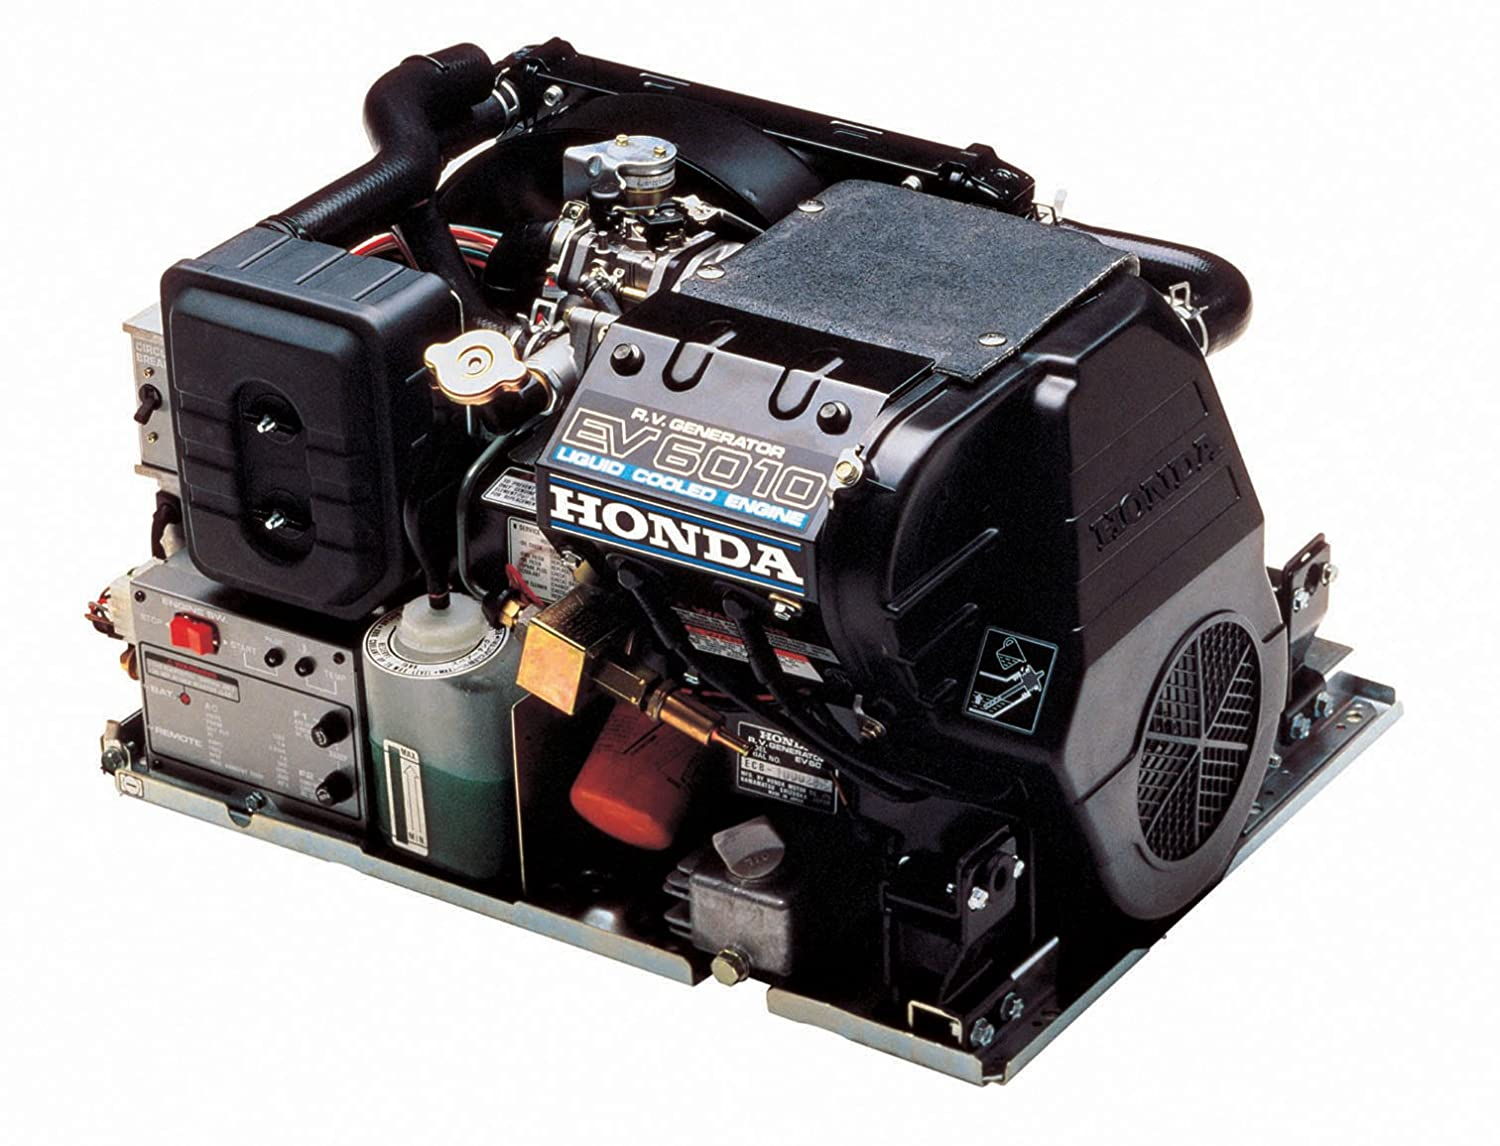 Amazon.com: Honda ev4010 4000 RV Watt Generador fabricado en ...